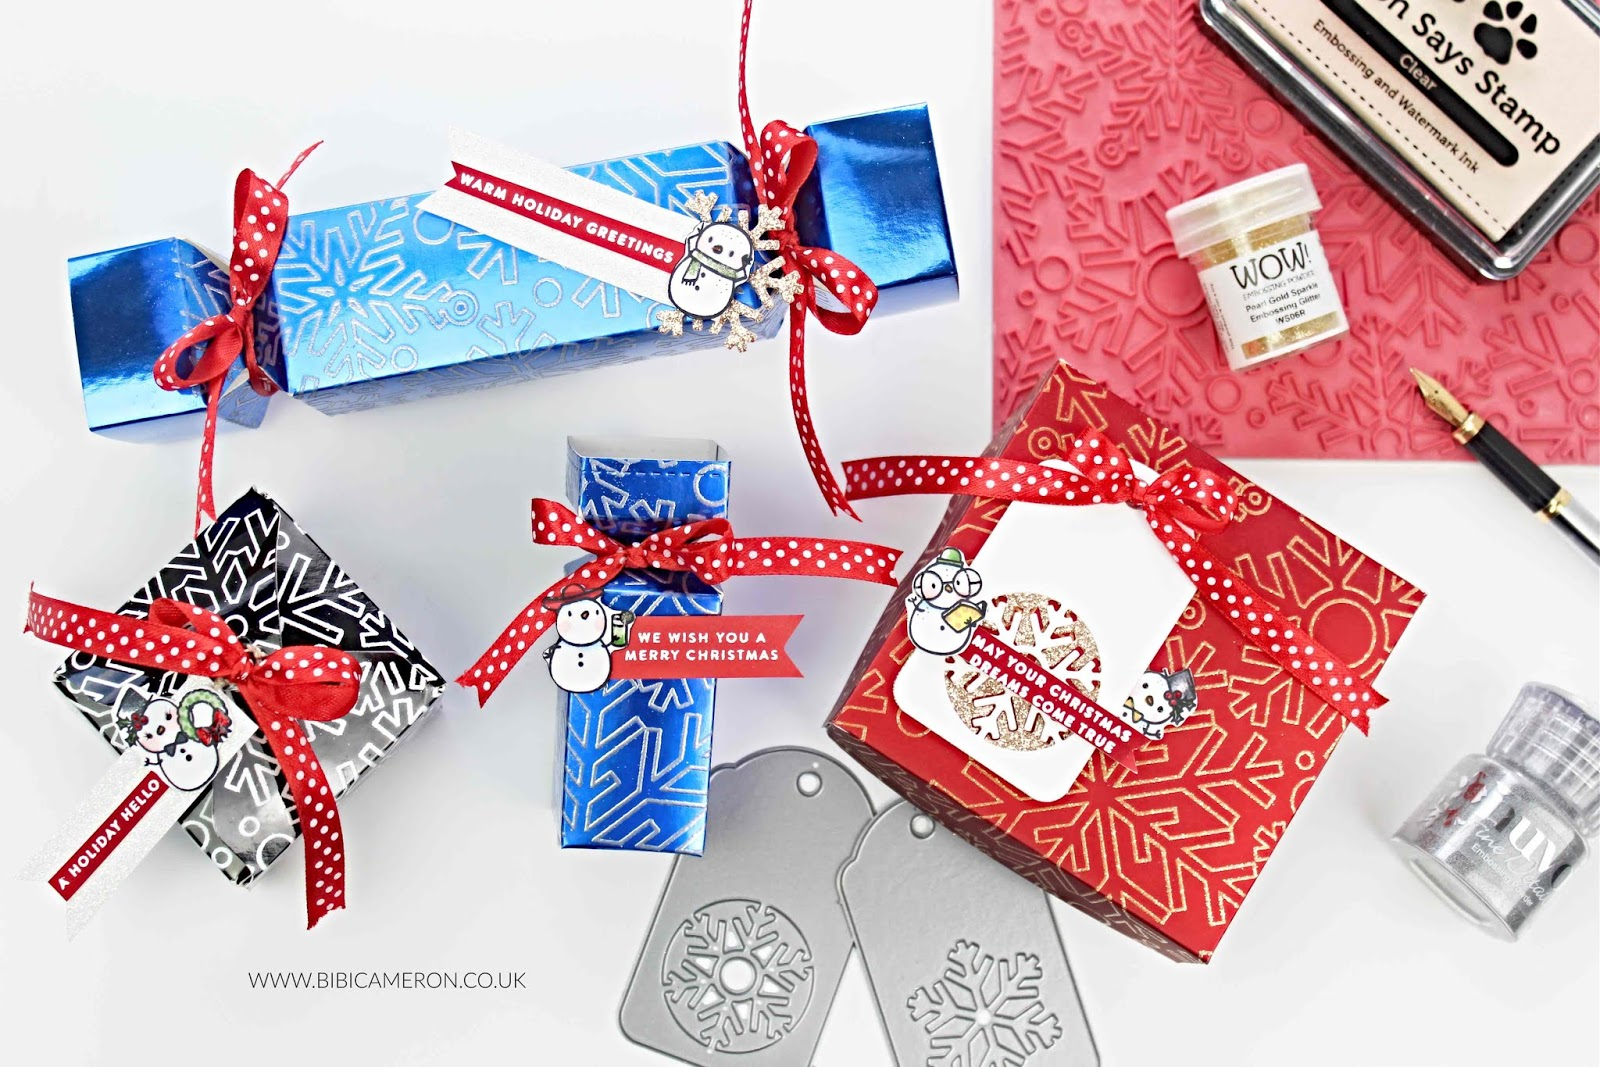 Heat Embossed  Mirror Cardstock Christmas Crackers and  Boxes | SSS Outline Snowflake Background Stamp